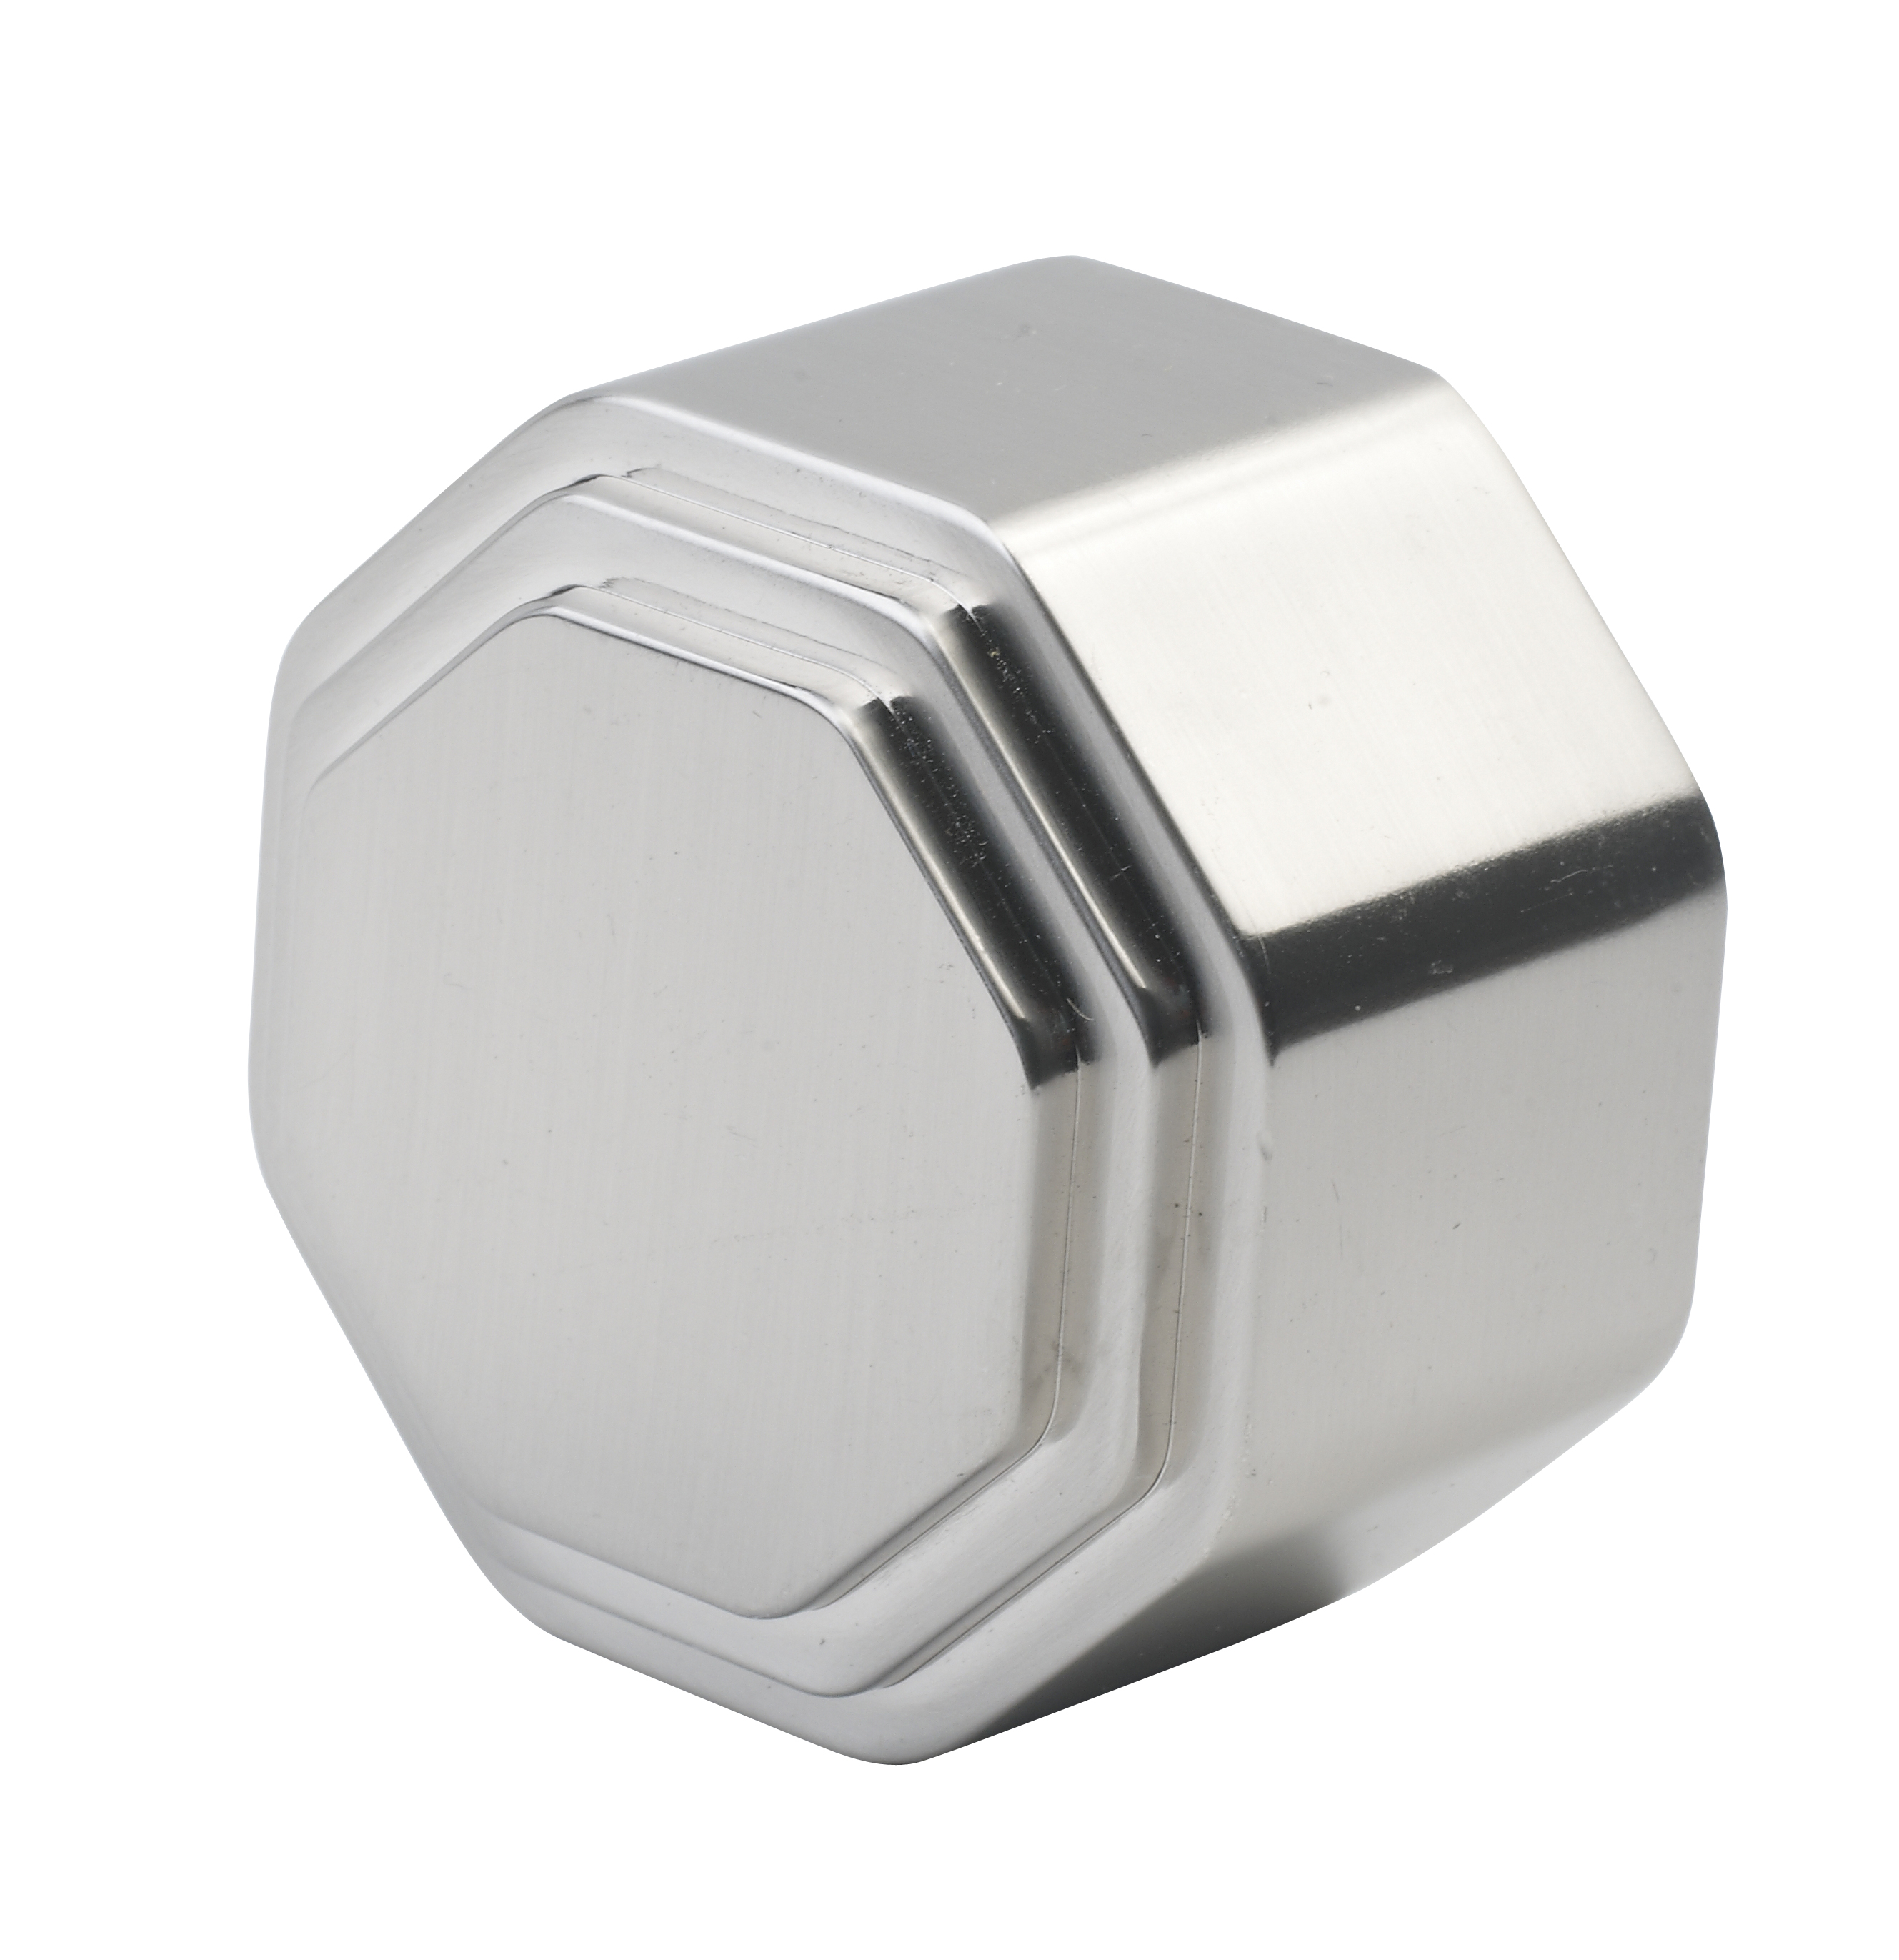 2 Octagonal Chrome End Cap